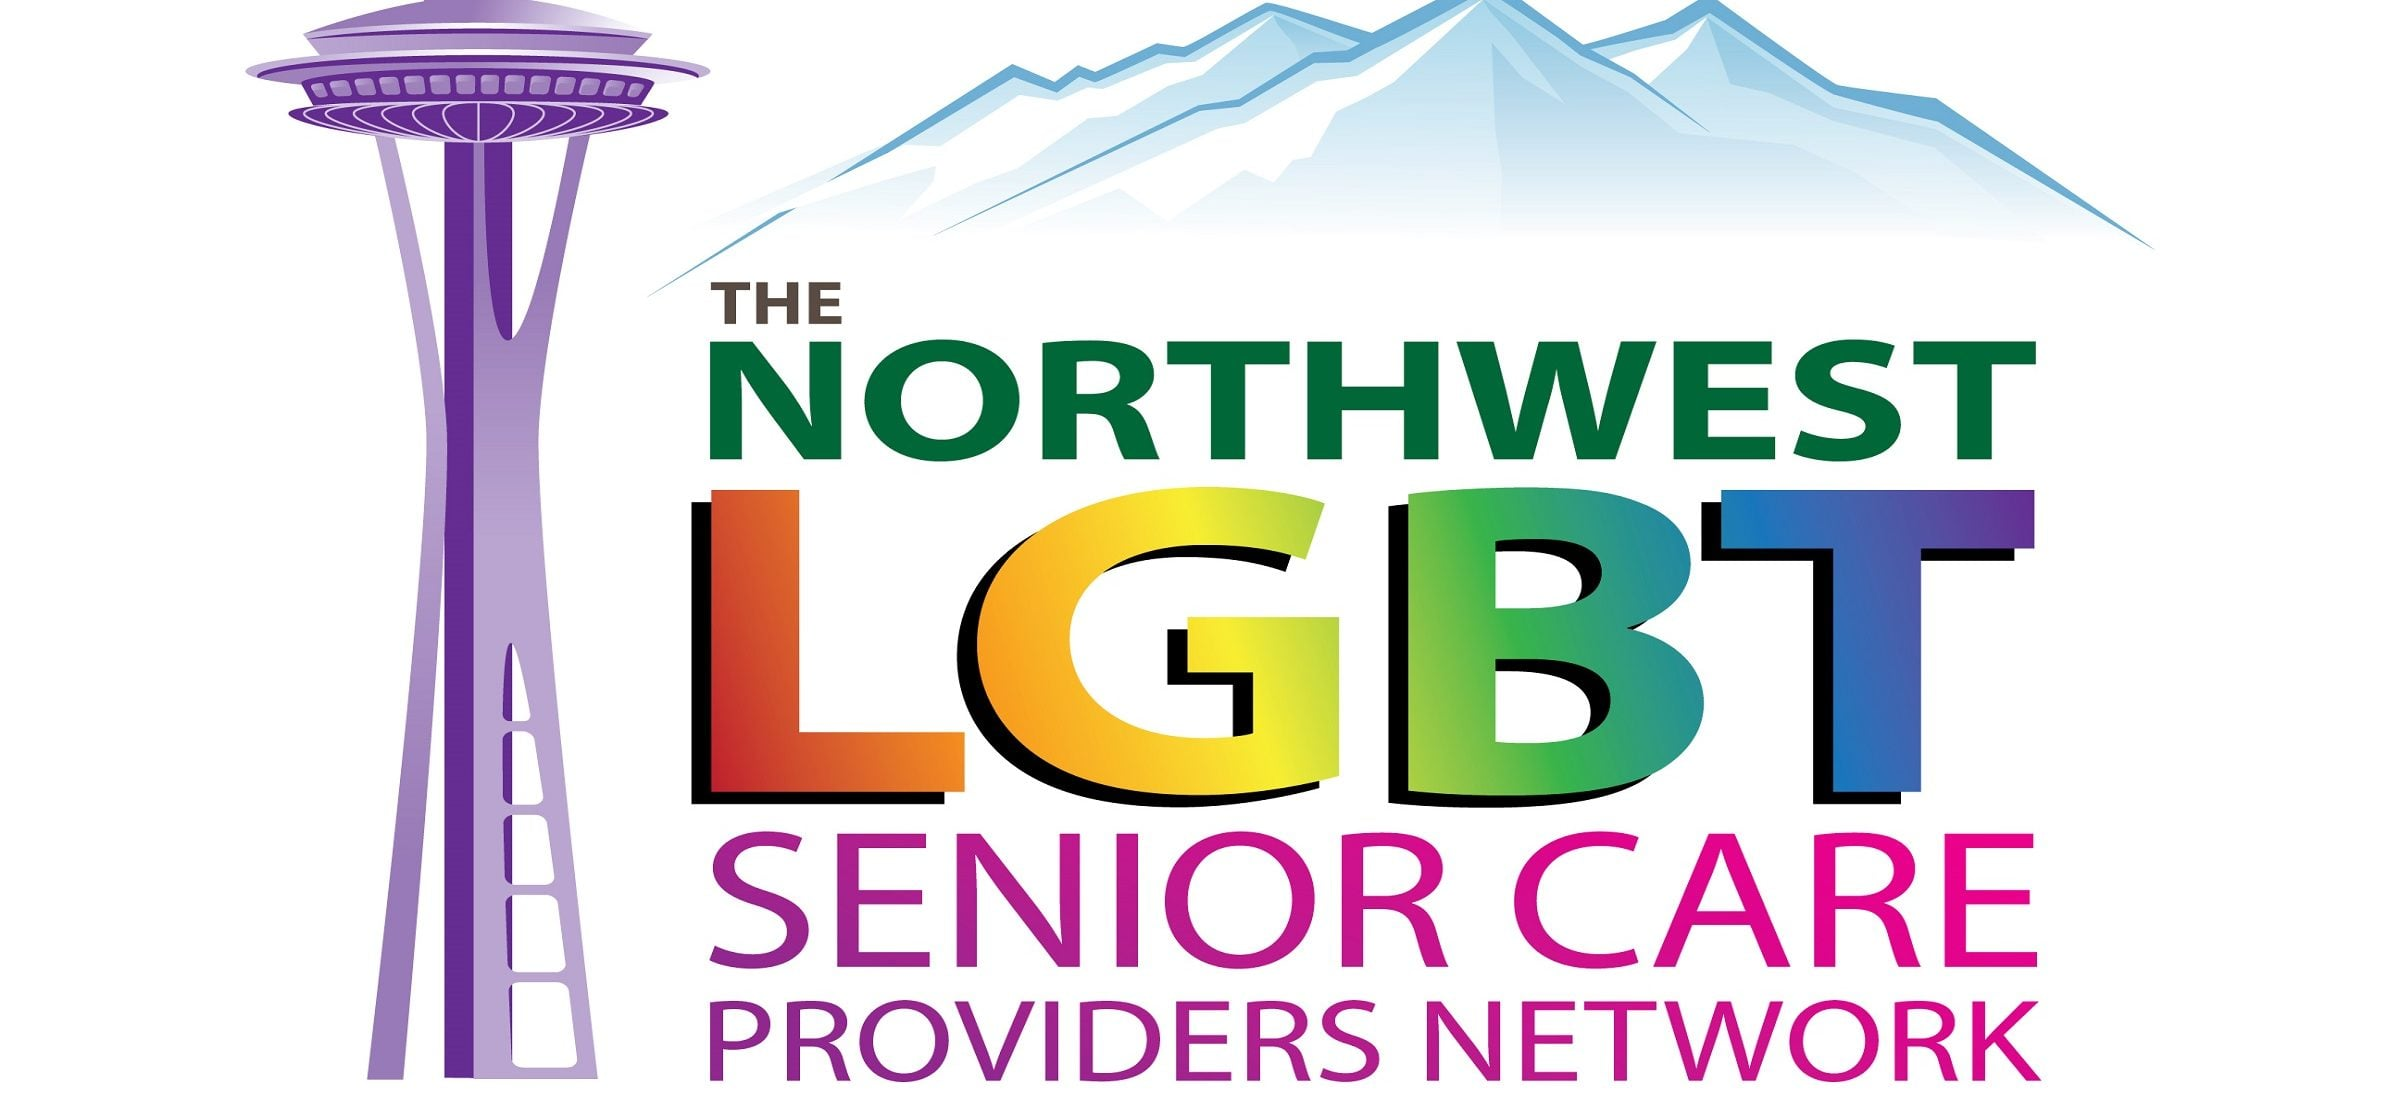 NorthWest LGBT Senior Care Providers Network